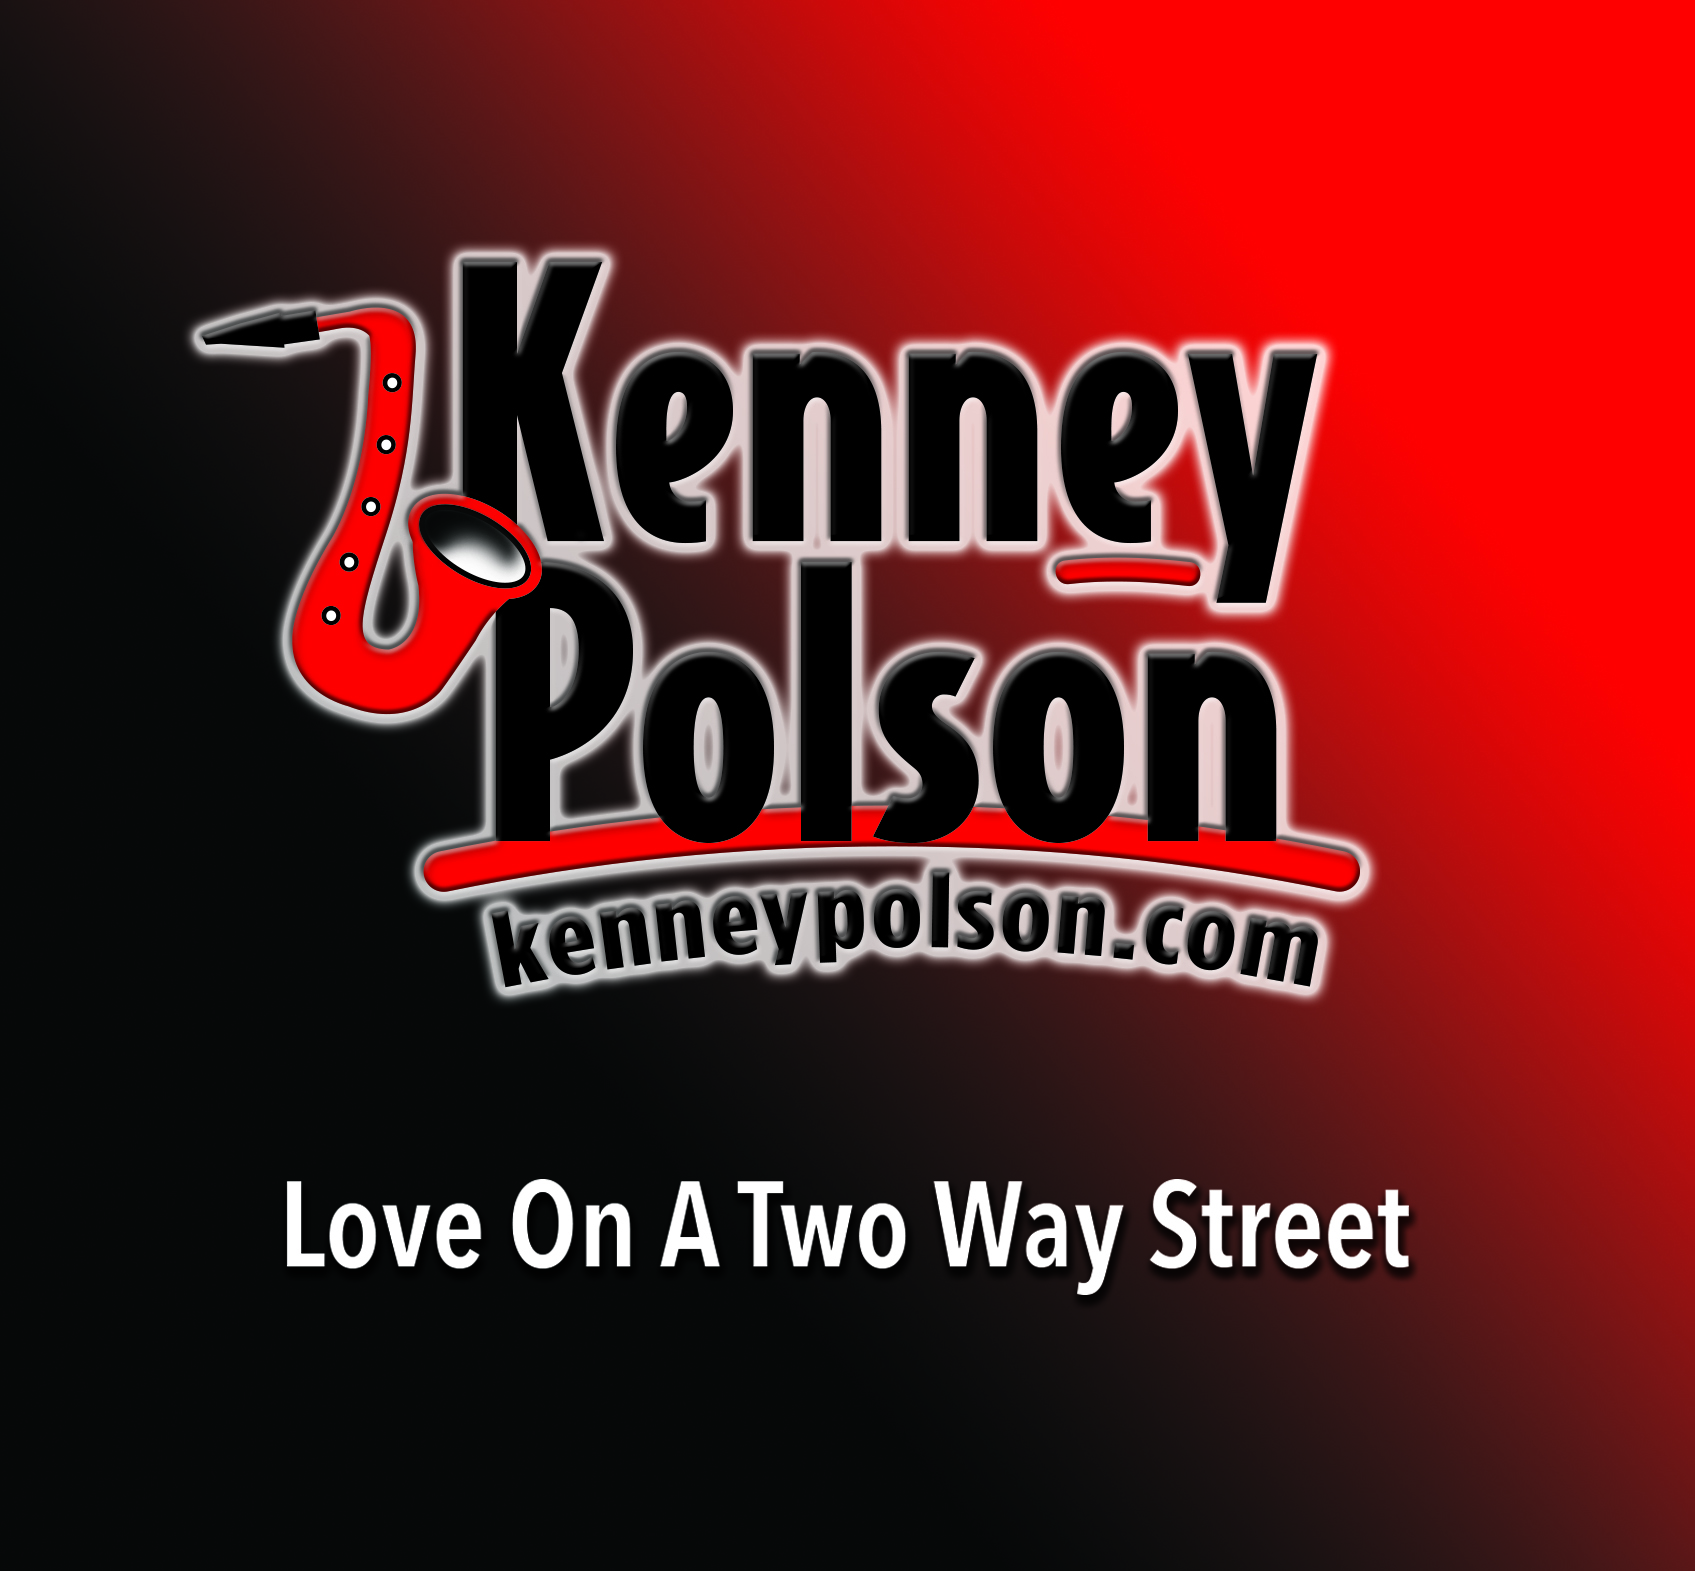 Kenney Polson - Love On A Two Way Street